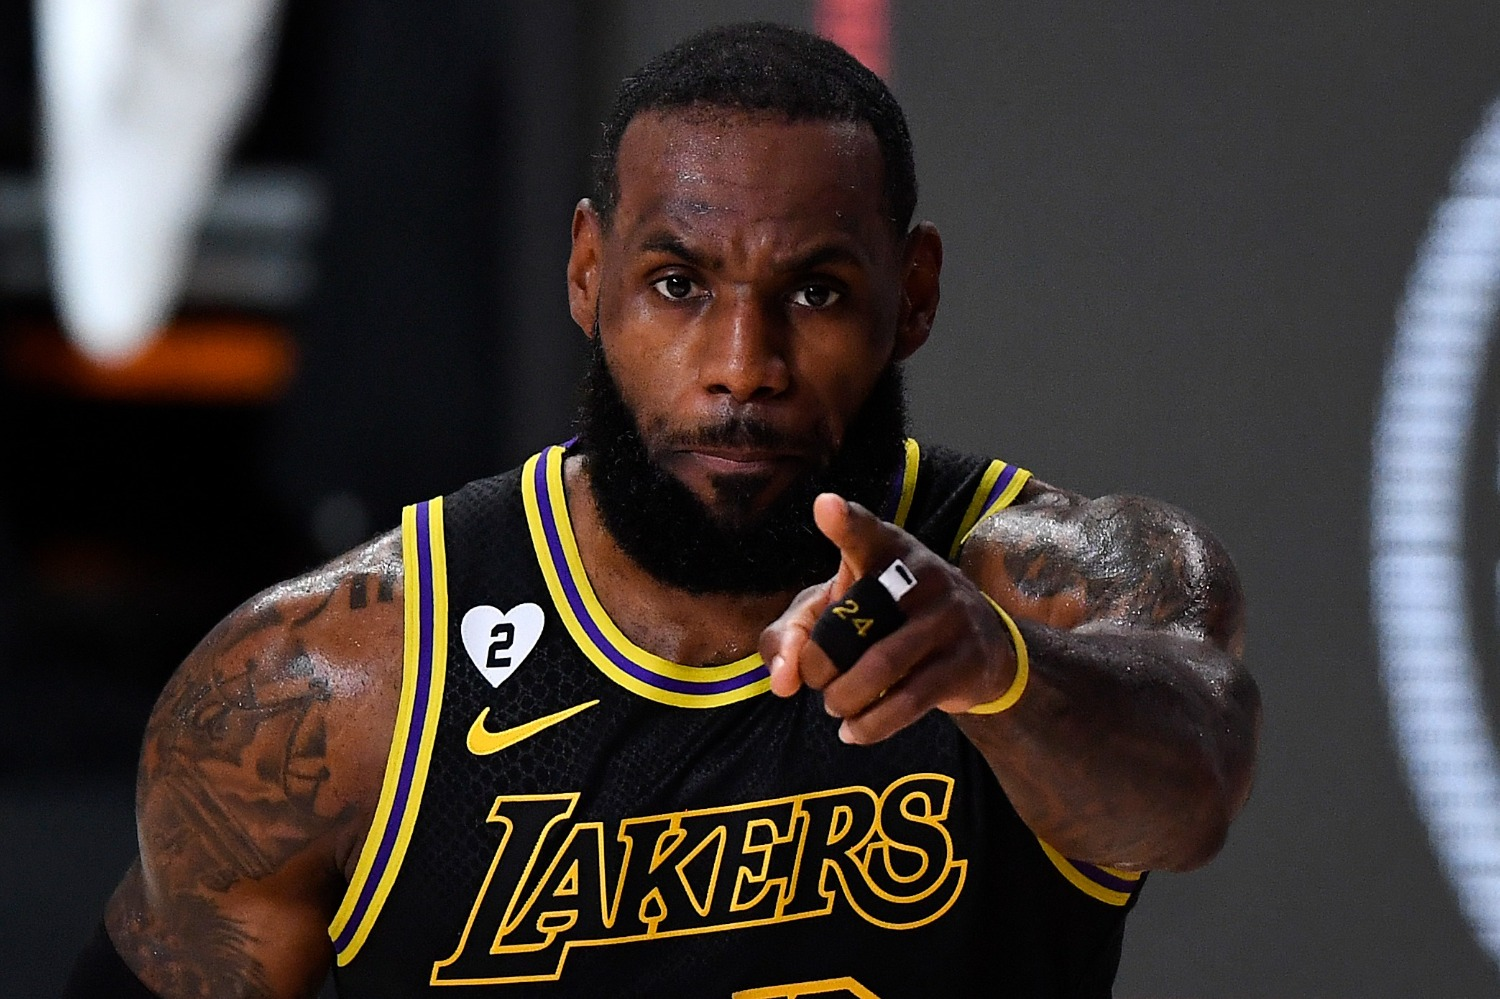 Lakers star LeBron James just unleashed the NBA's worst nightmare after expressing his displeasure with getting snubbed in the NBA MVP voting.